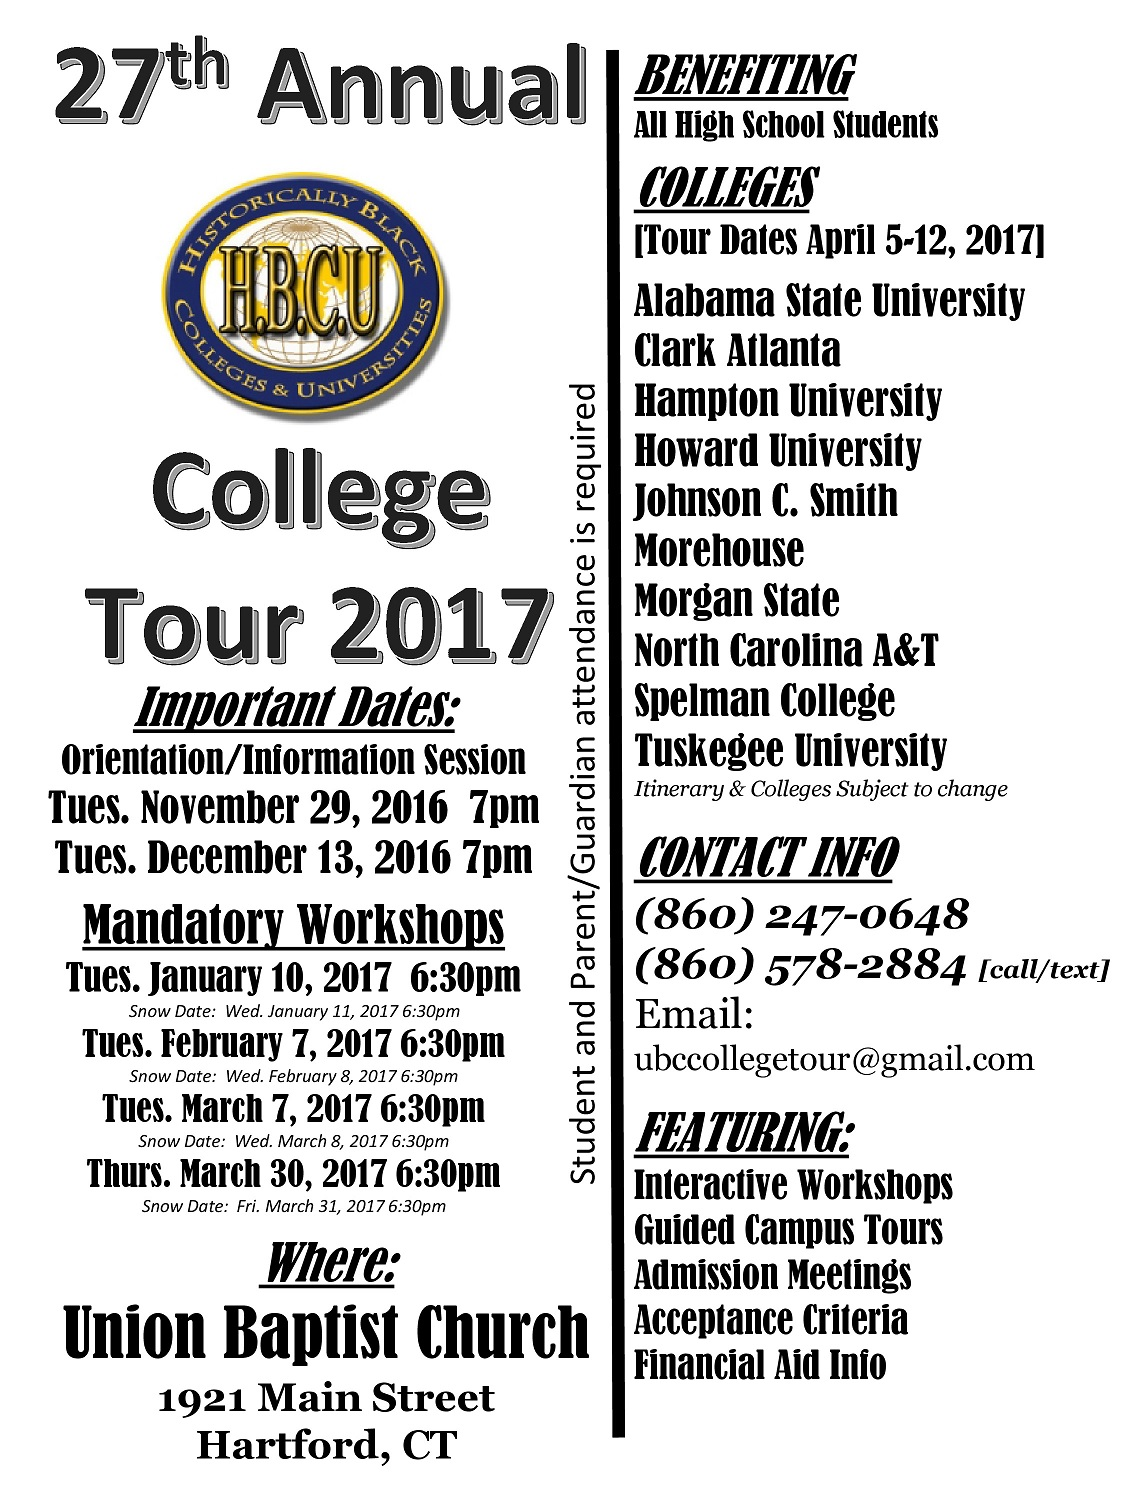 Join the 27th Annual HBCU (Historically Black Colleges